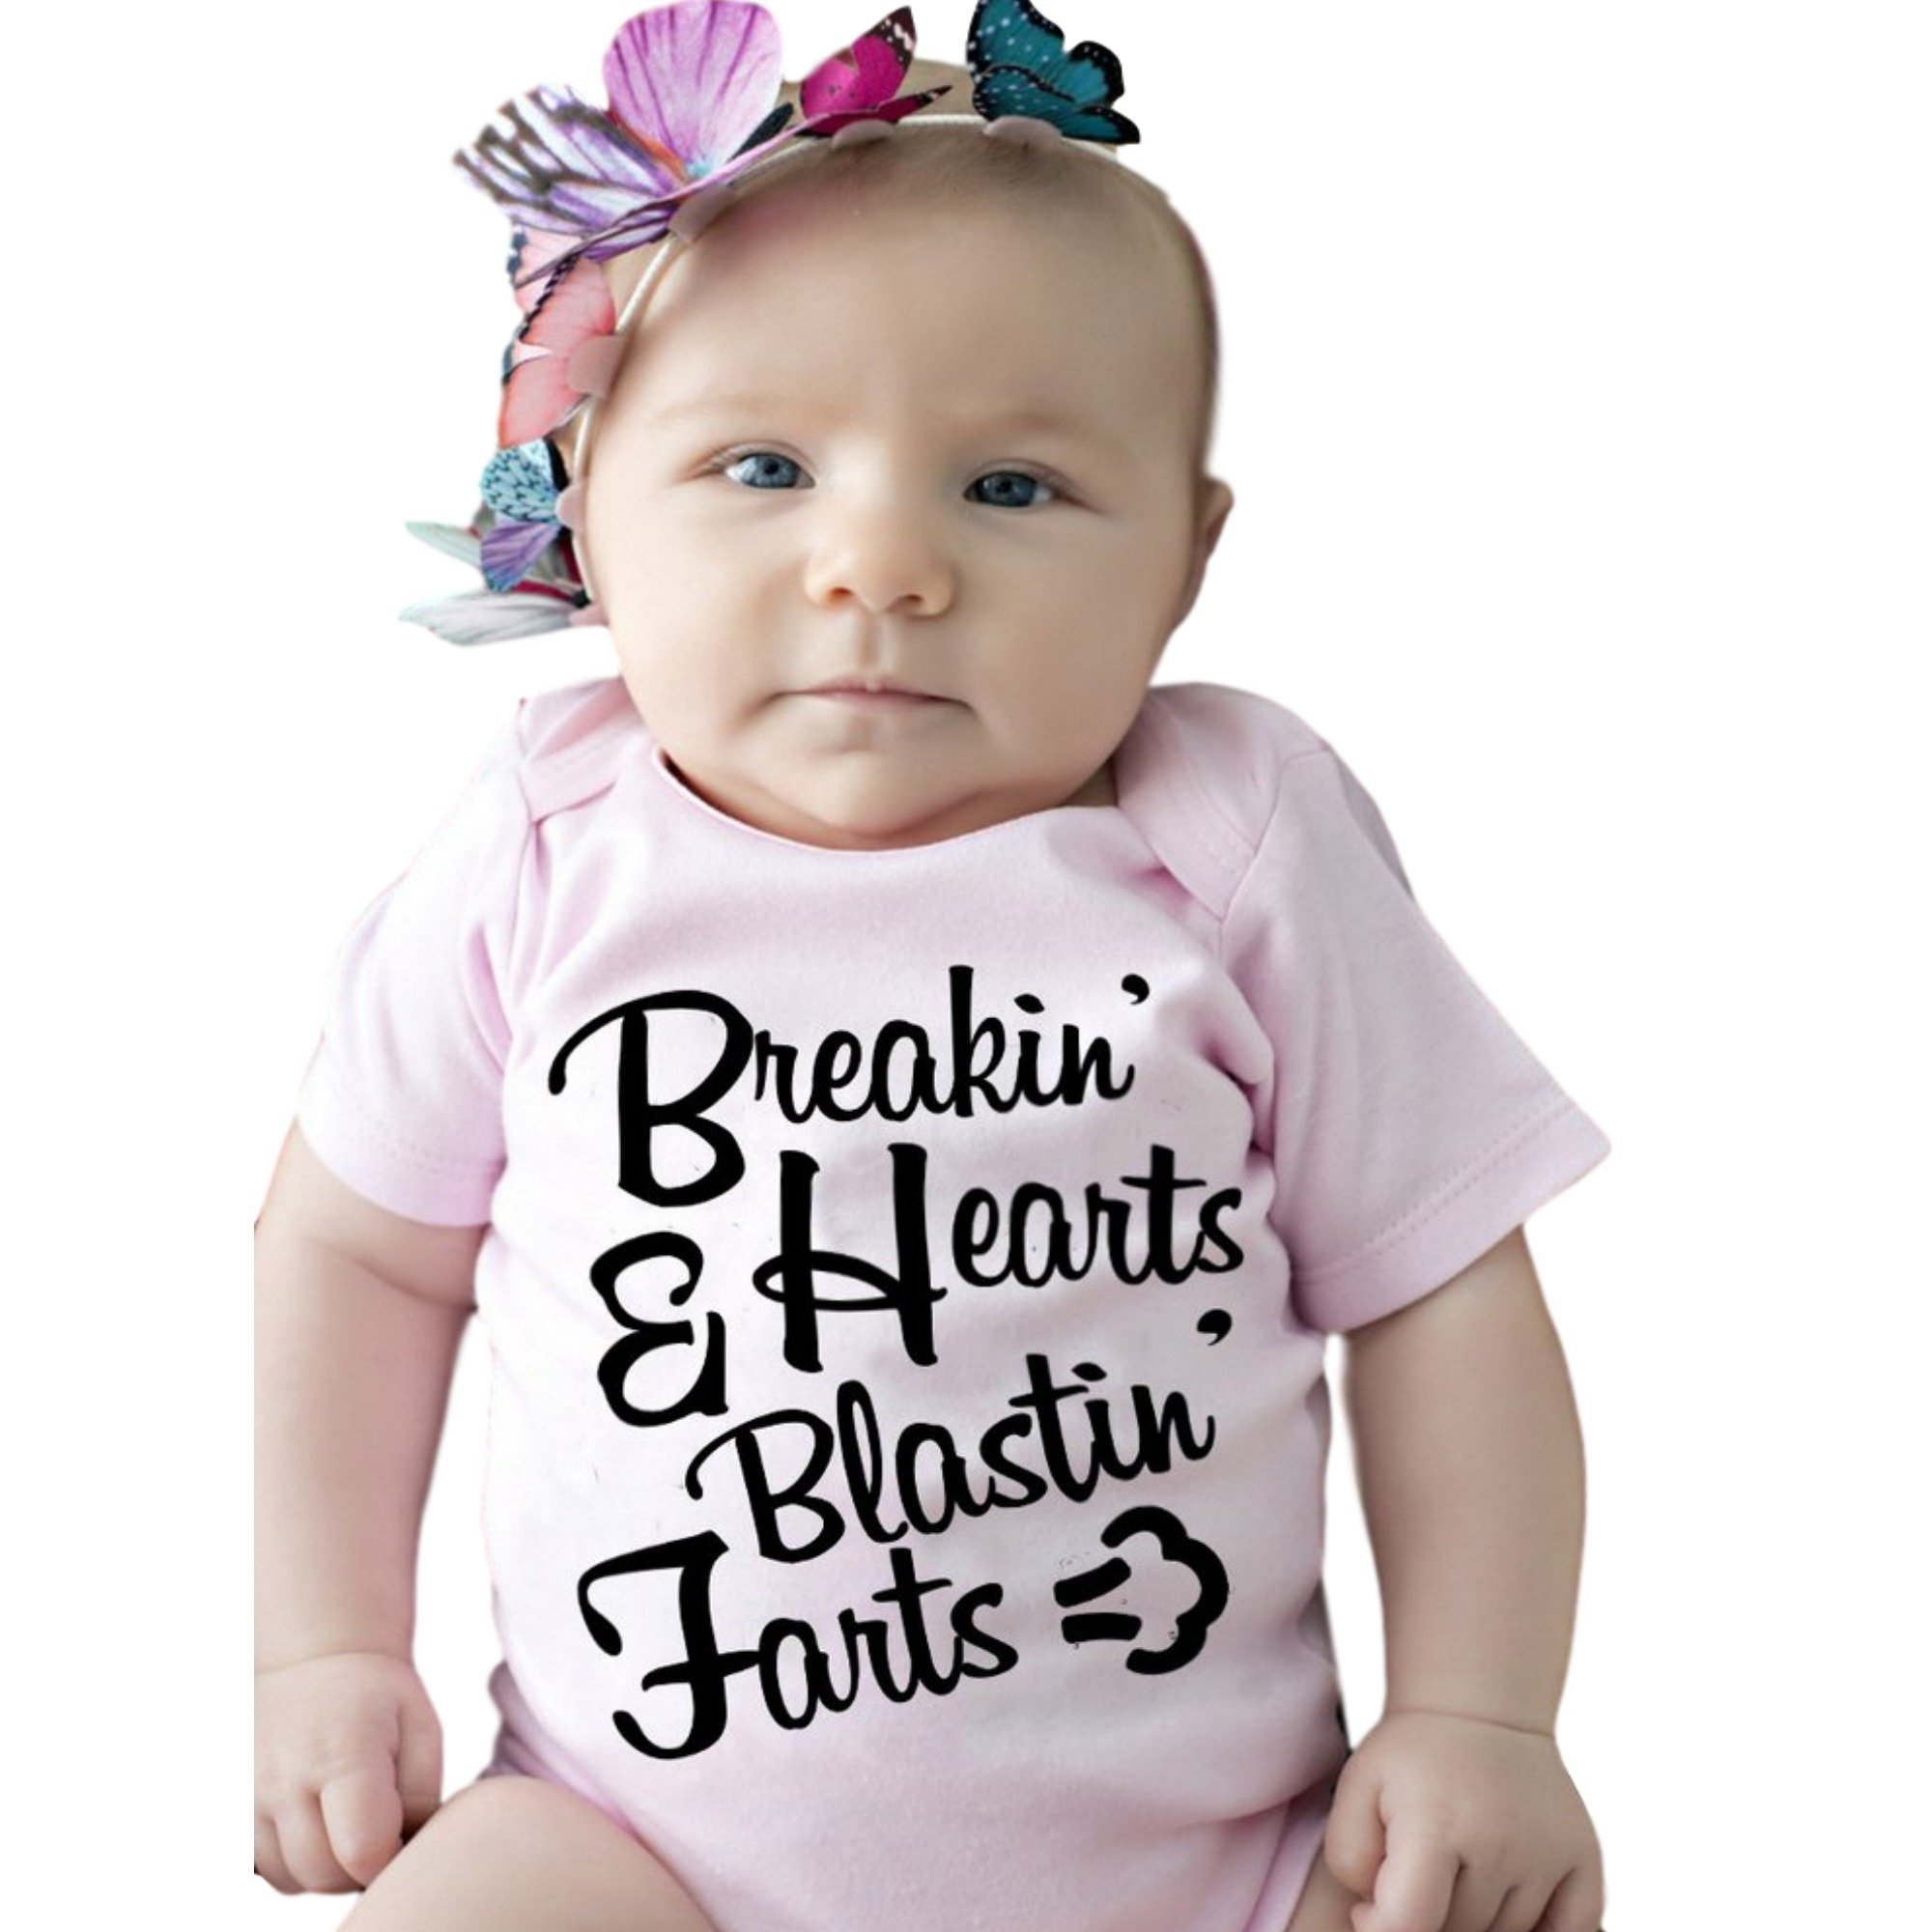 Breakin' Hearts & Blastin' Farts Funny Baby Onesie Short Sleeve Pink Cute Cool Unique Baby Gift (6-12M)